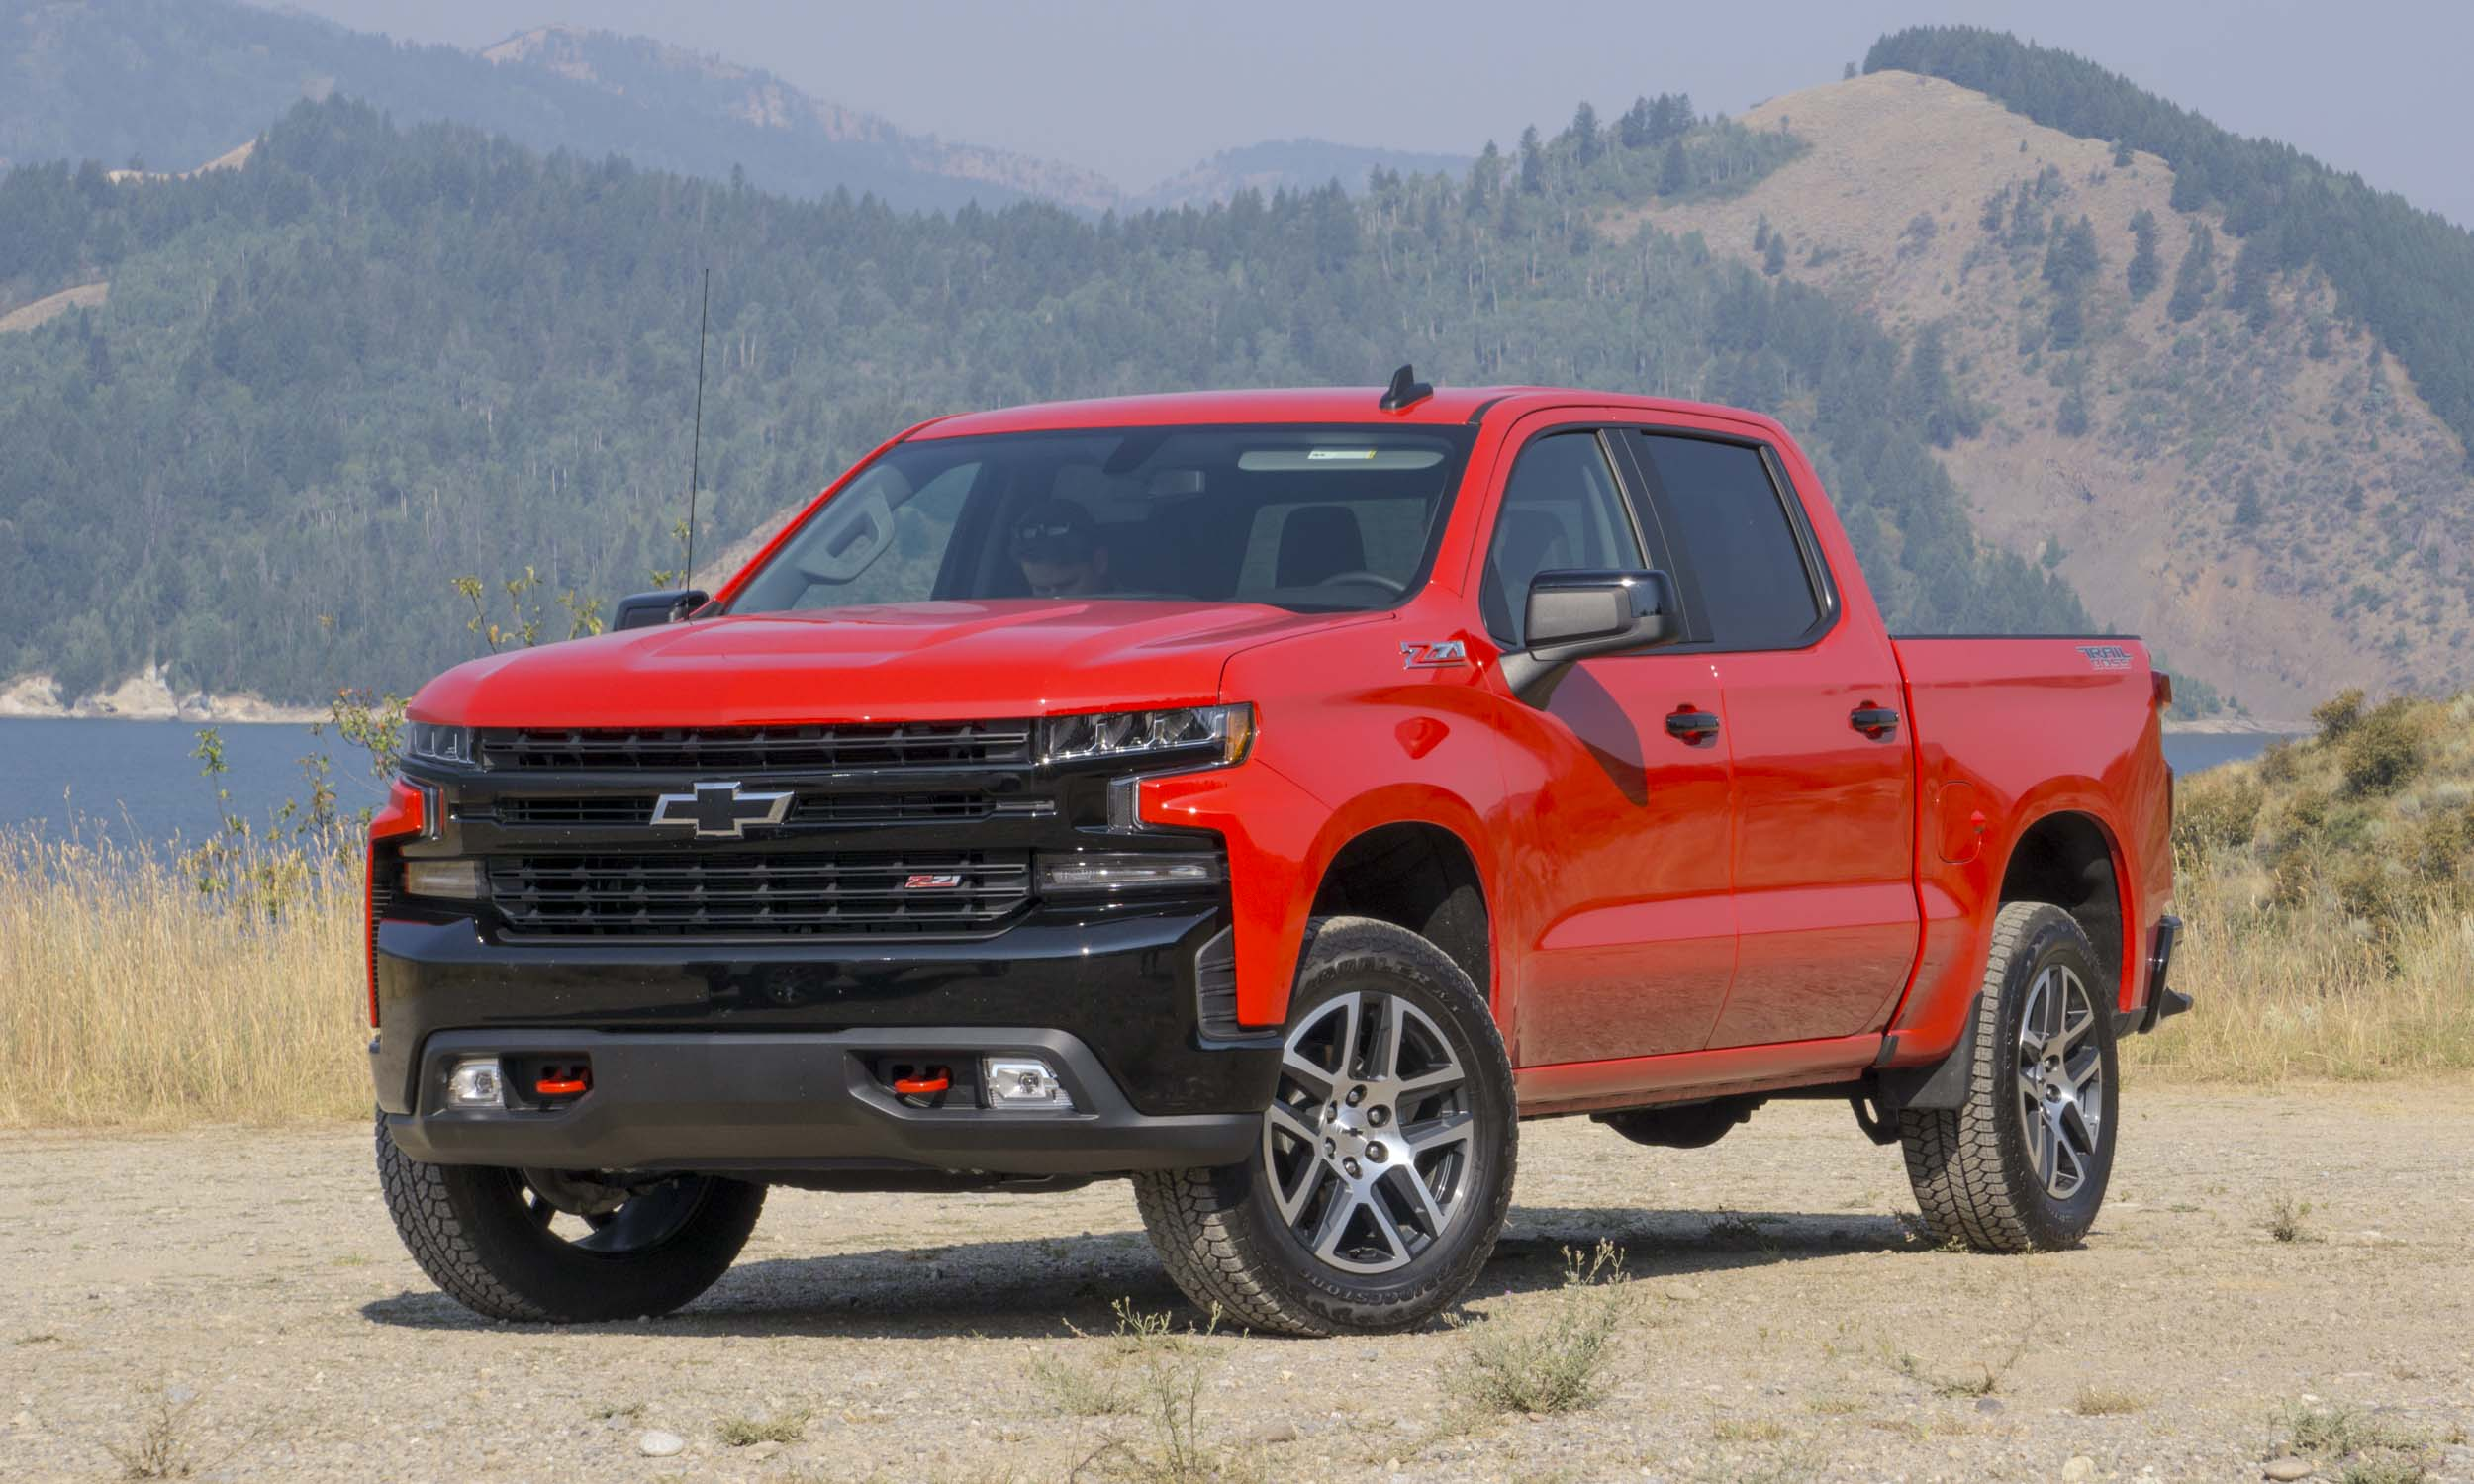 2019 Chevrolet Silverado 1500: First Drive Review - » AutoNXT